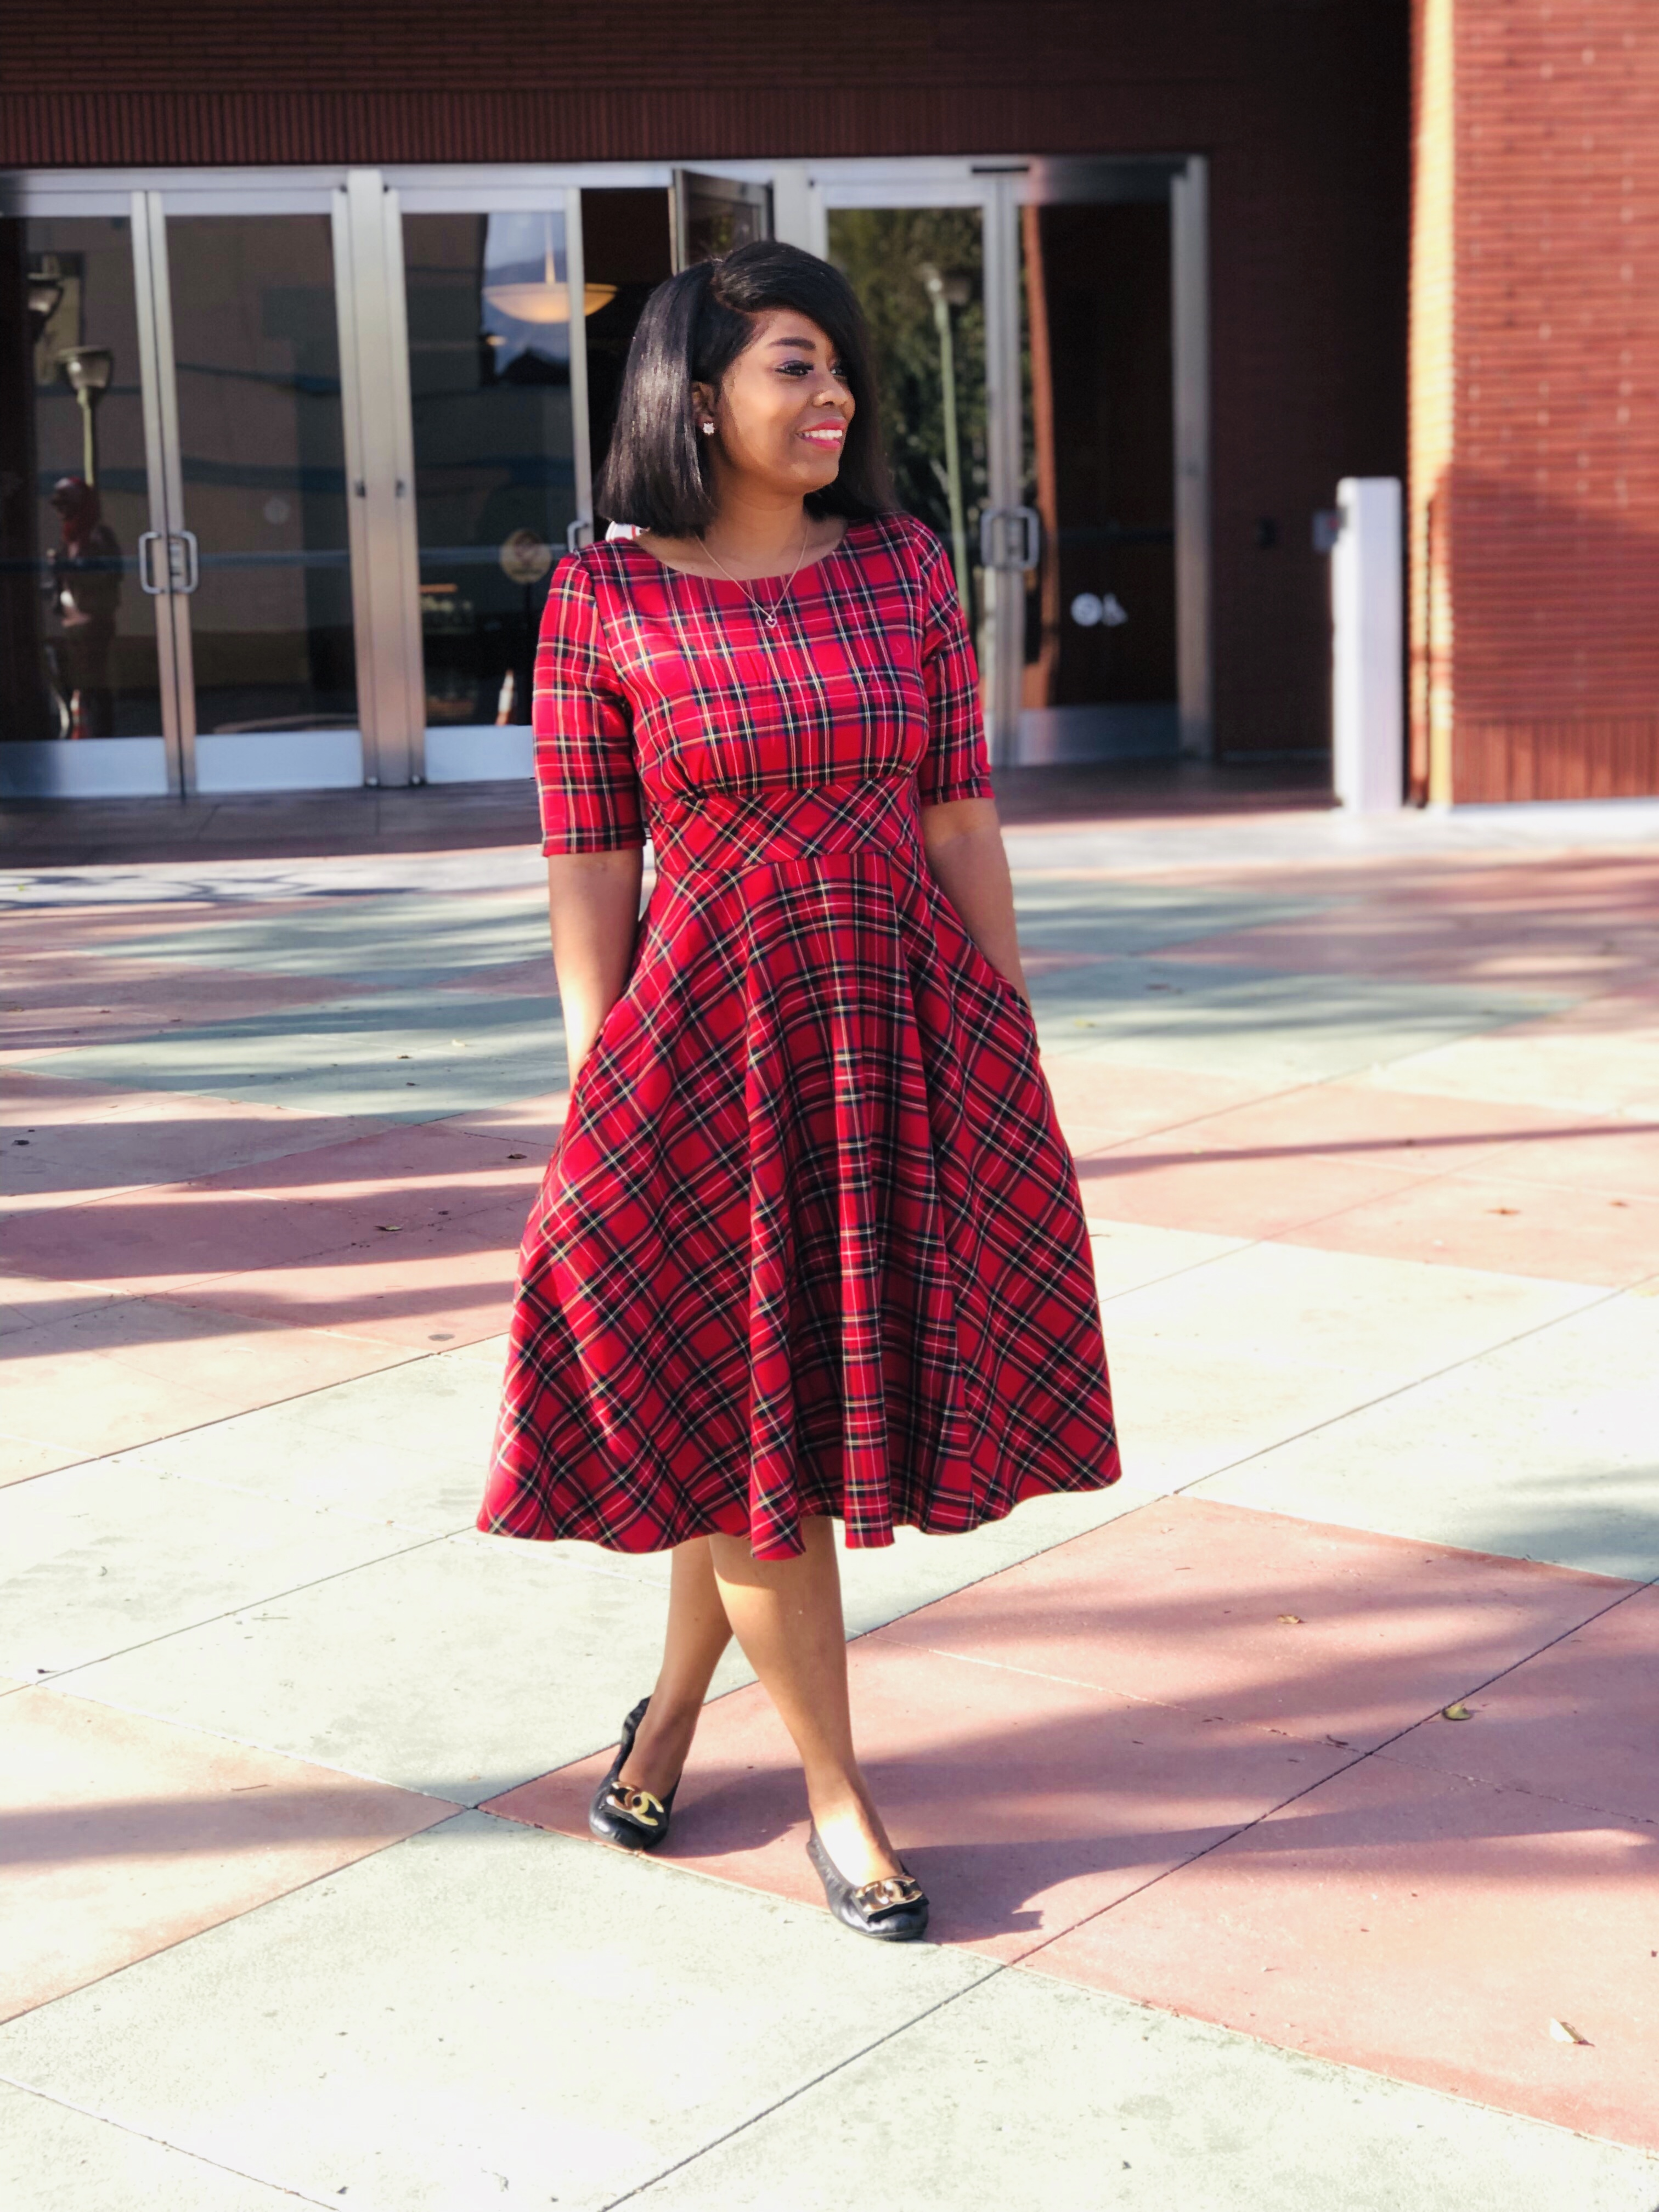 My Style: Hell Bunny 1950s Red Plaid Irvine Swing Holiday Dress